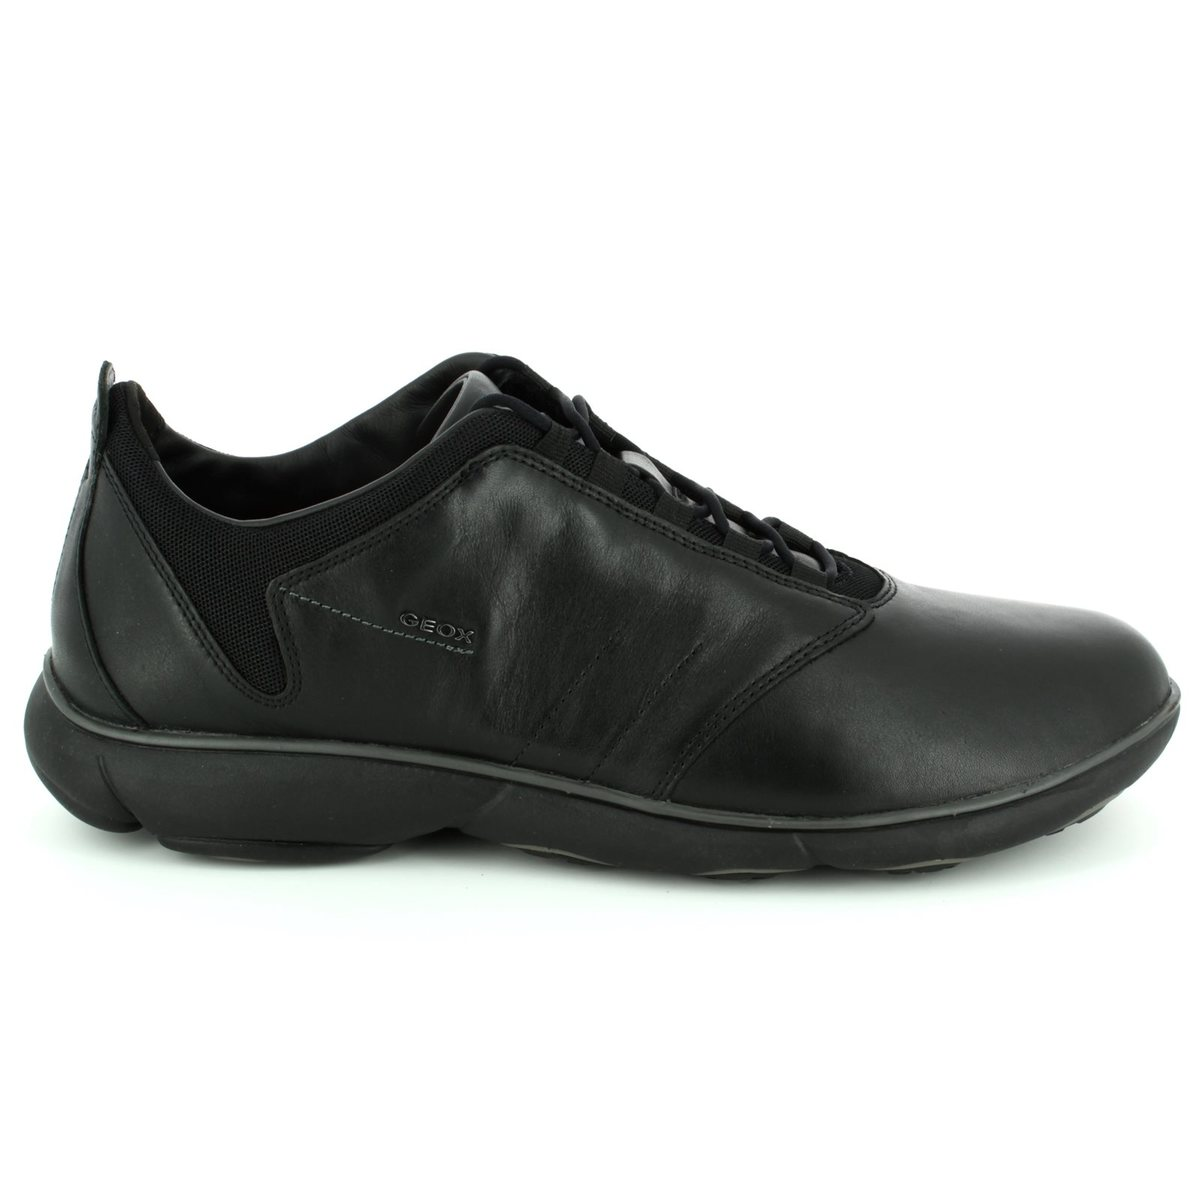 9538f0cd2ced3 Geox Casual Shoes - Black - U52D7A/C9999 NEBULA MEN